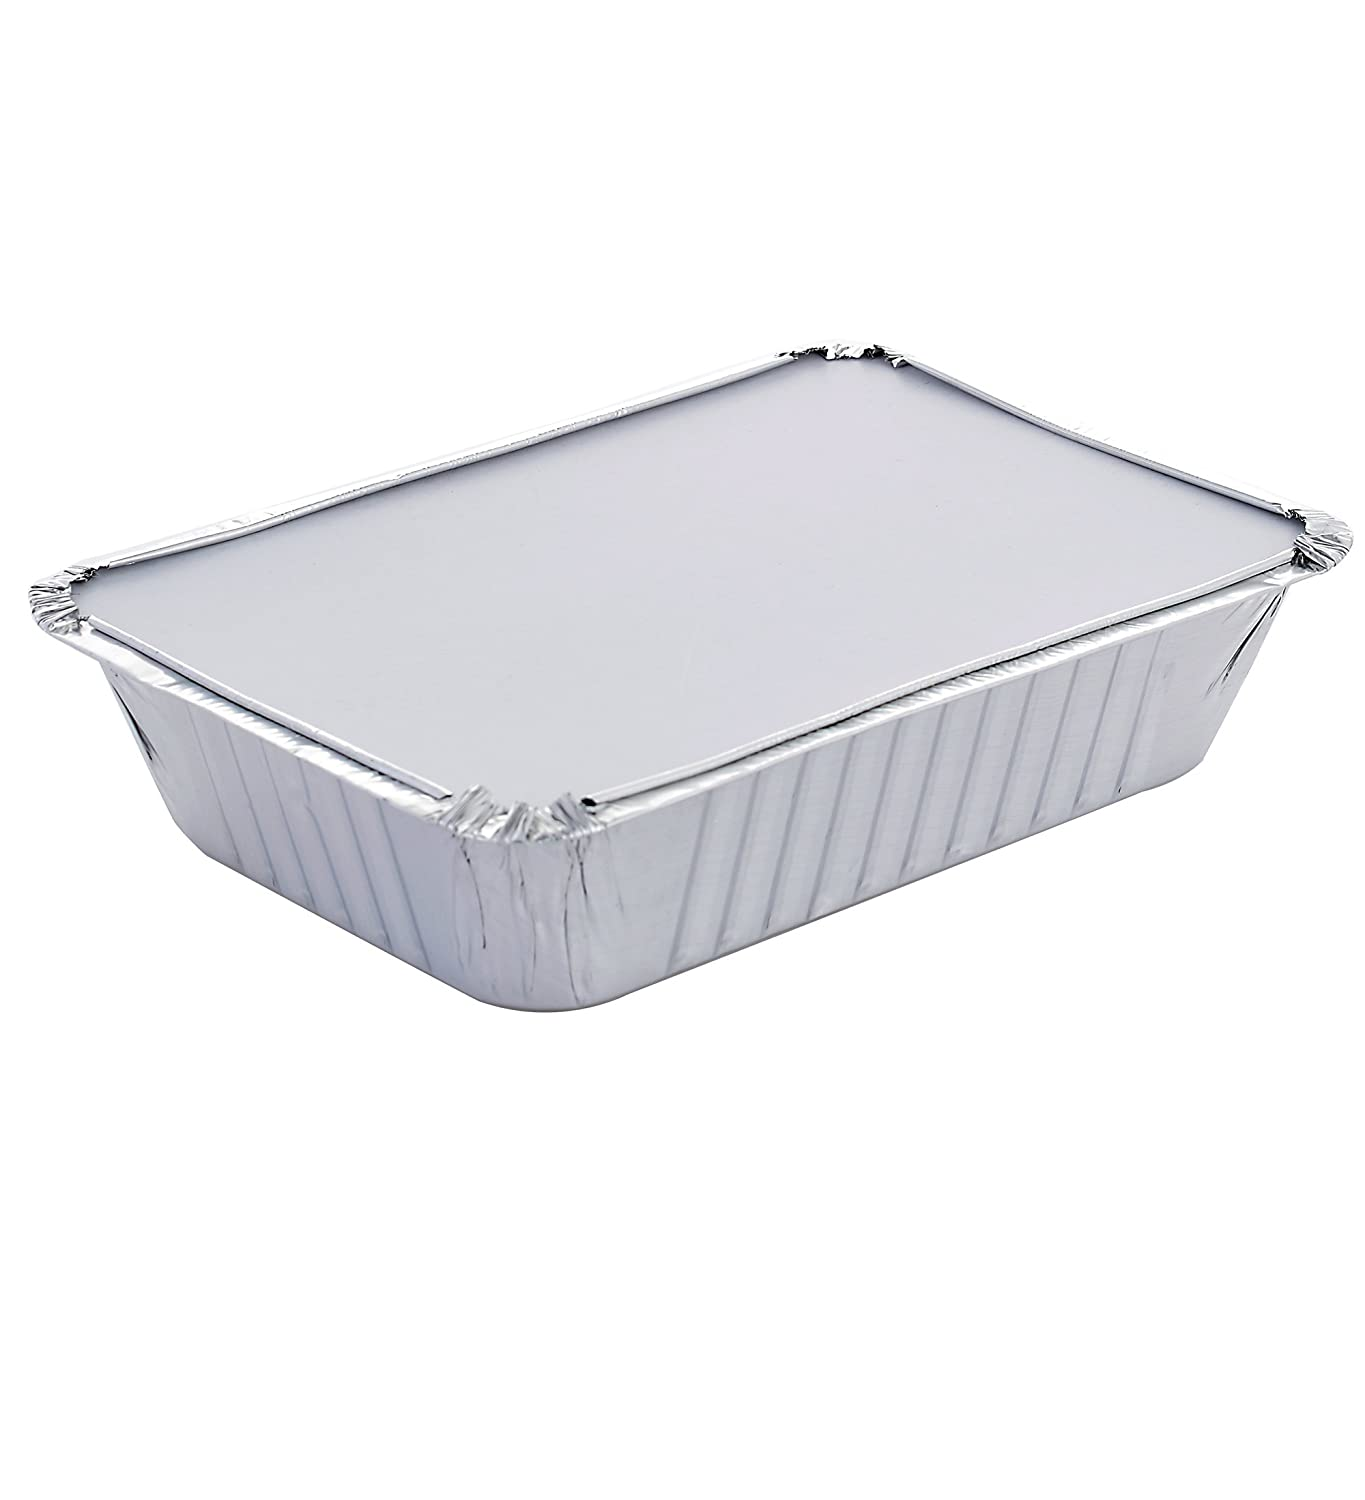 DOBI 2.25lb Takeout Pans Standard Single-Portion-Size Disposable Aluminum Foil Take-Out Containers with Lids 50 Pack 8 1//2 x 6 x 1 4//5